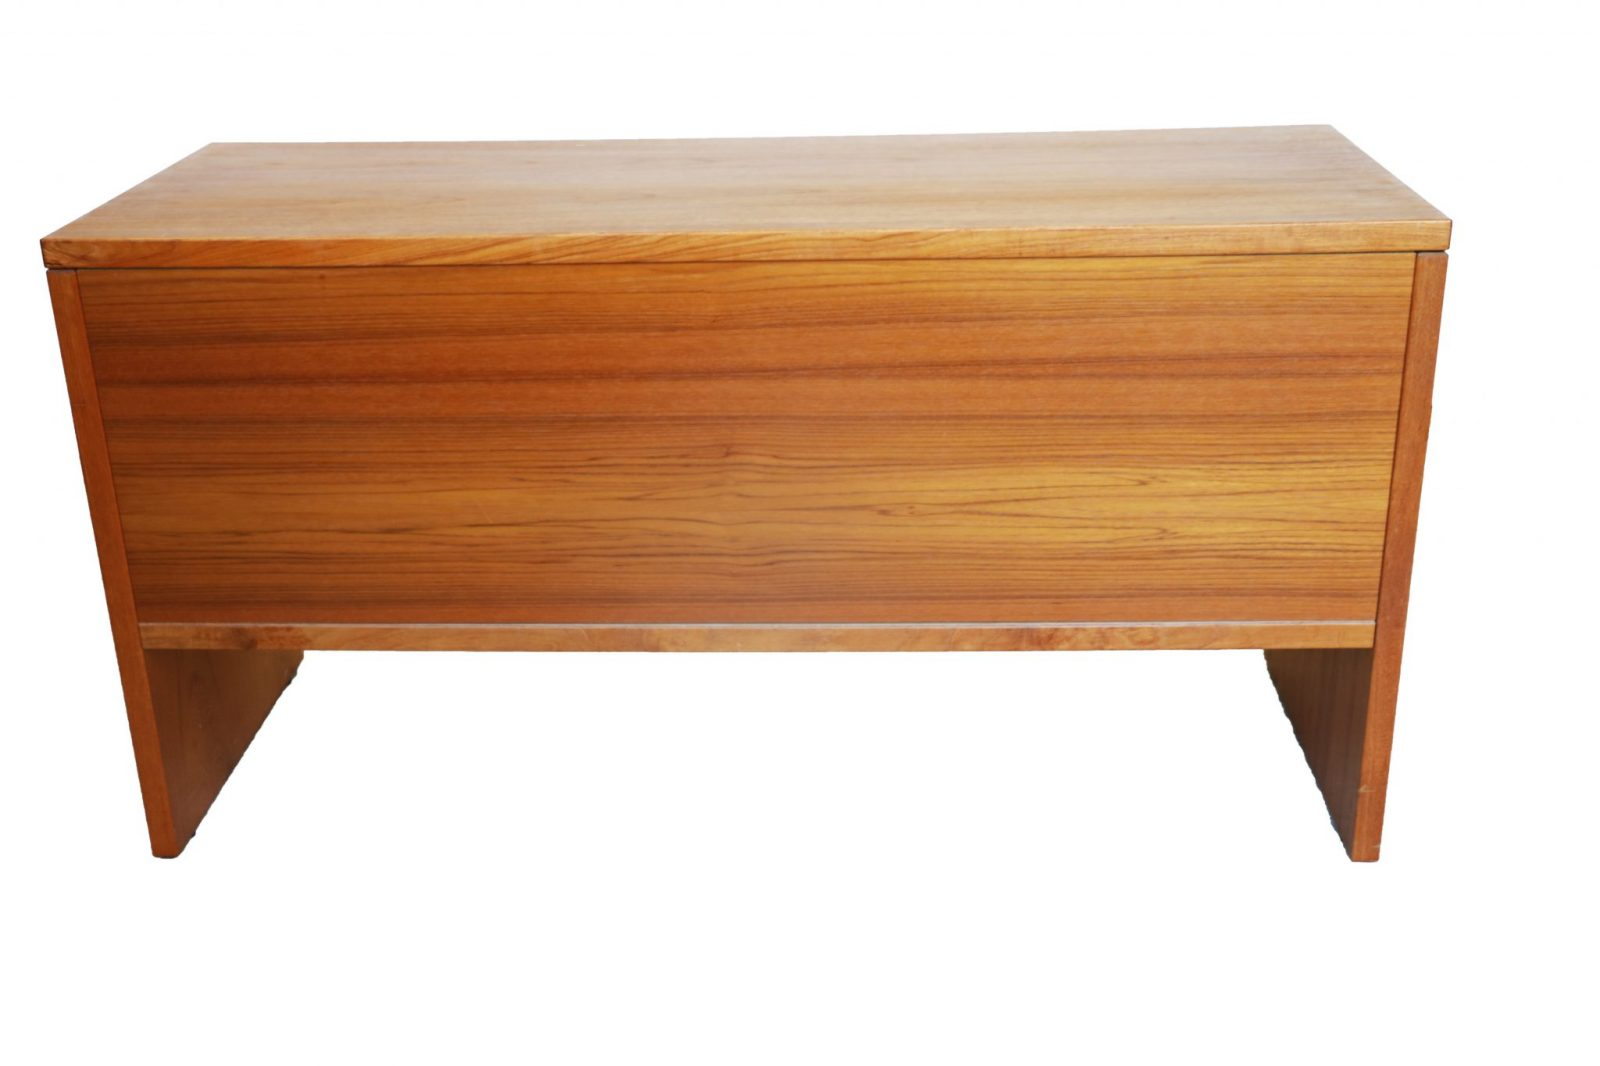 Mid century modern danish teak office credenza finished back for Mid century modern danish furniture